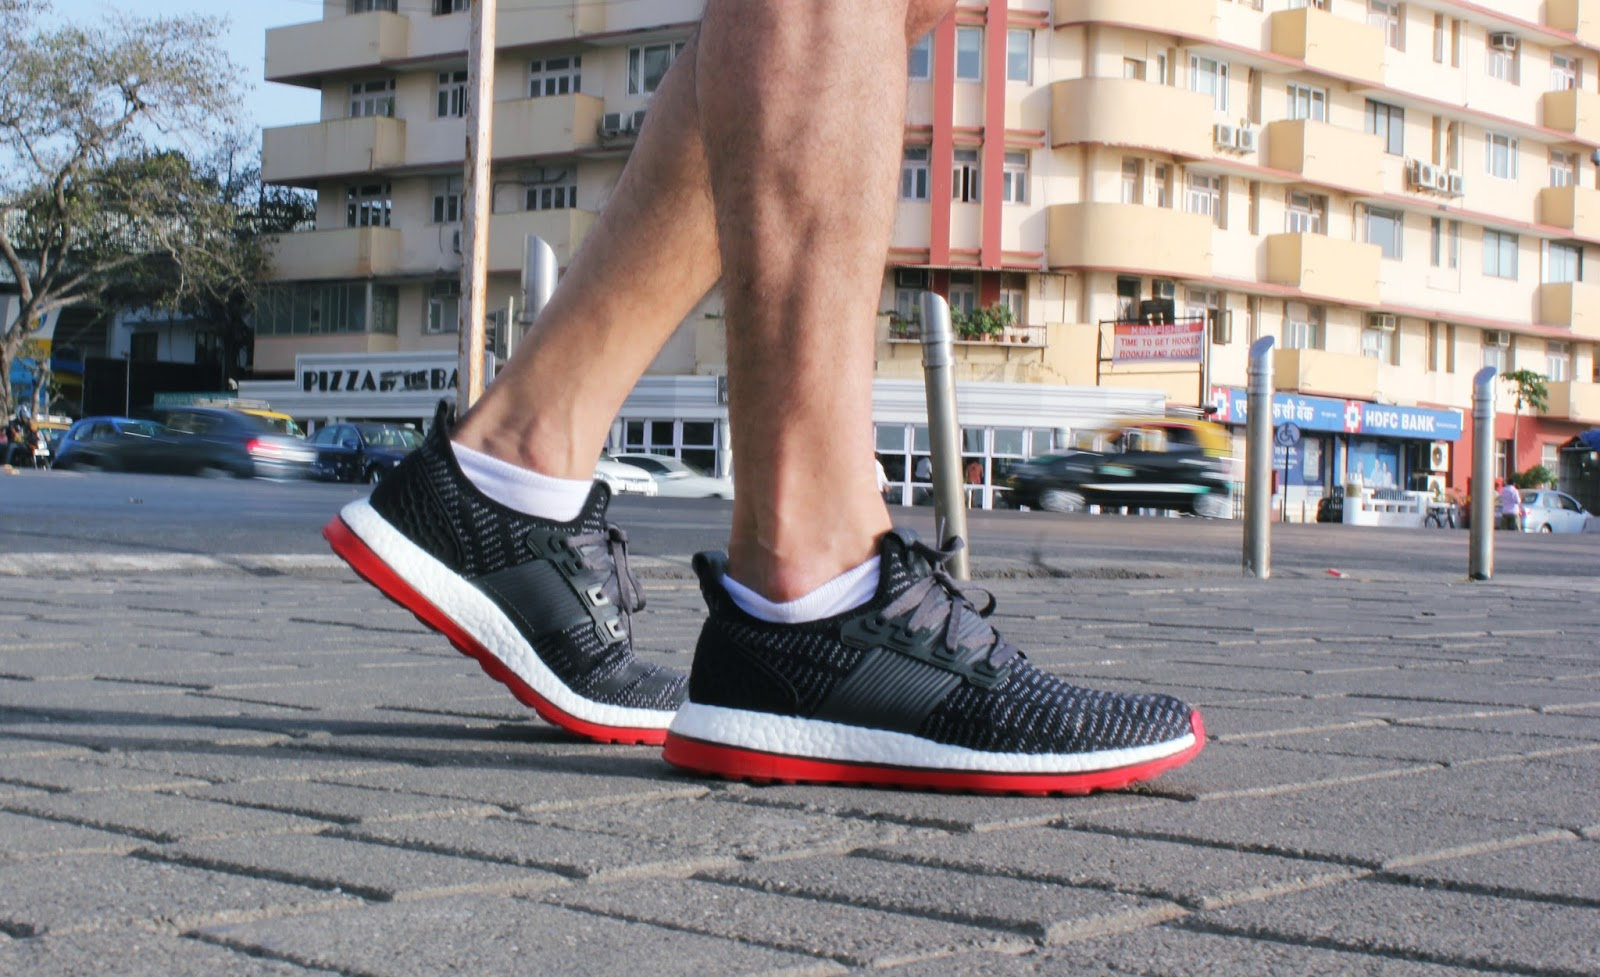 7a0cb63981f98 adidas pure boost zg review